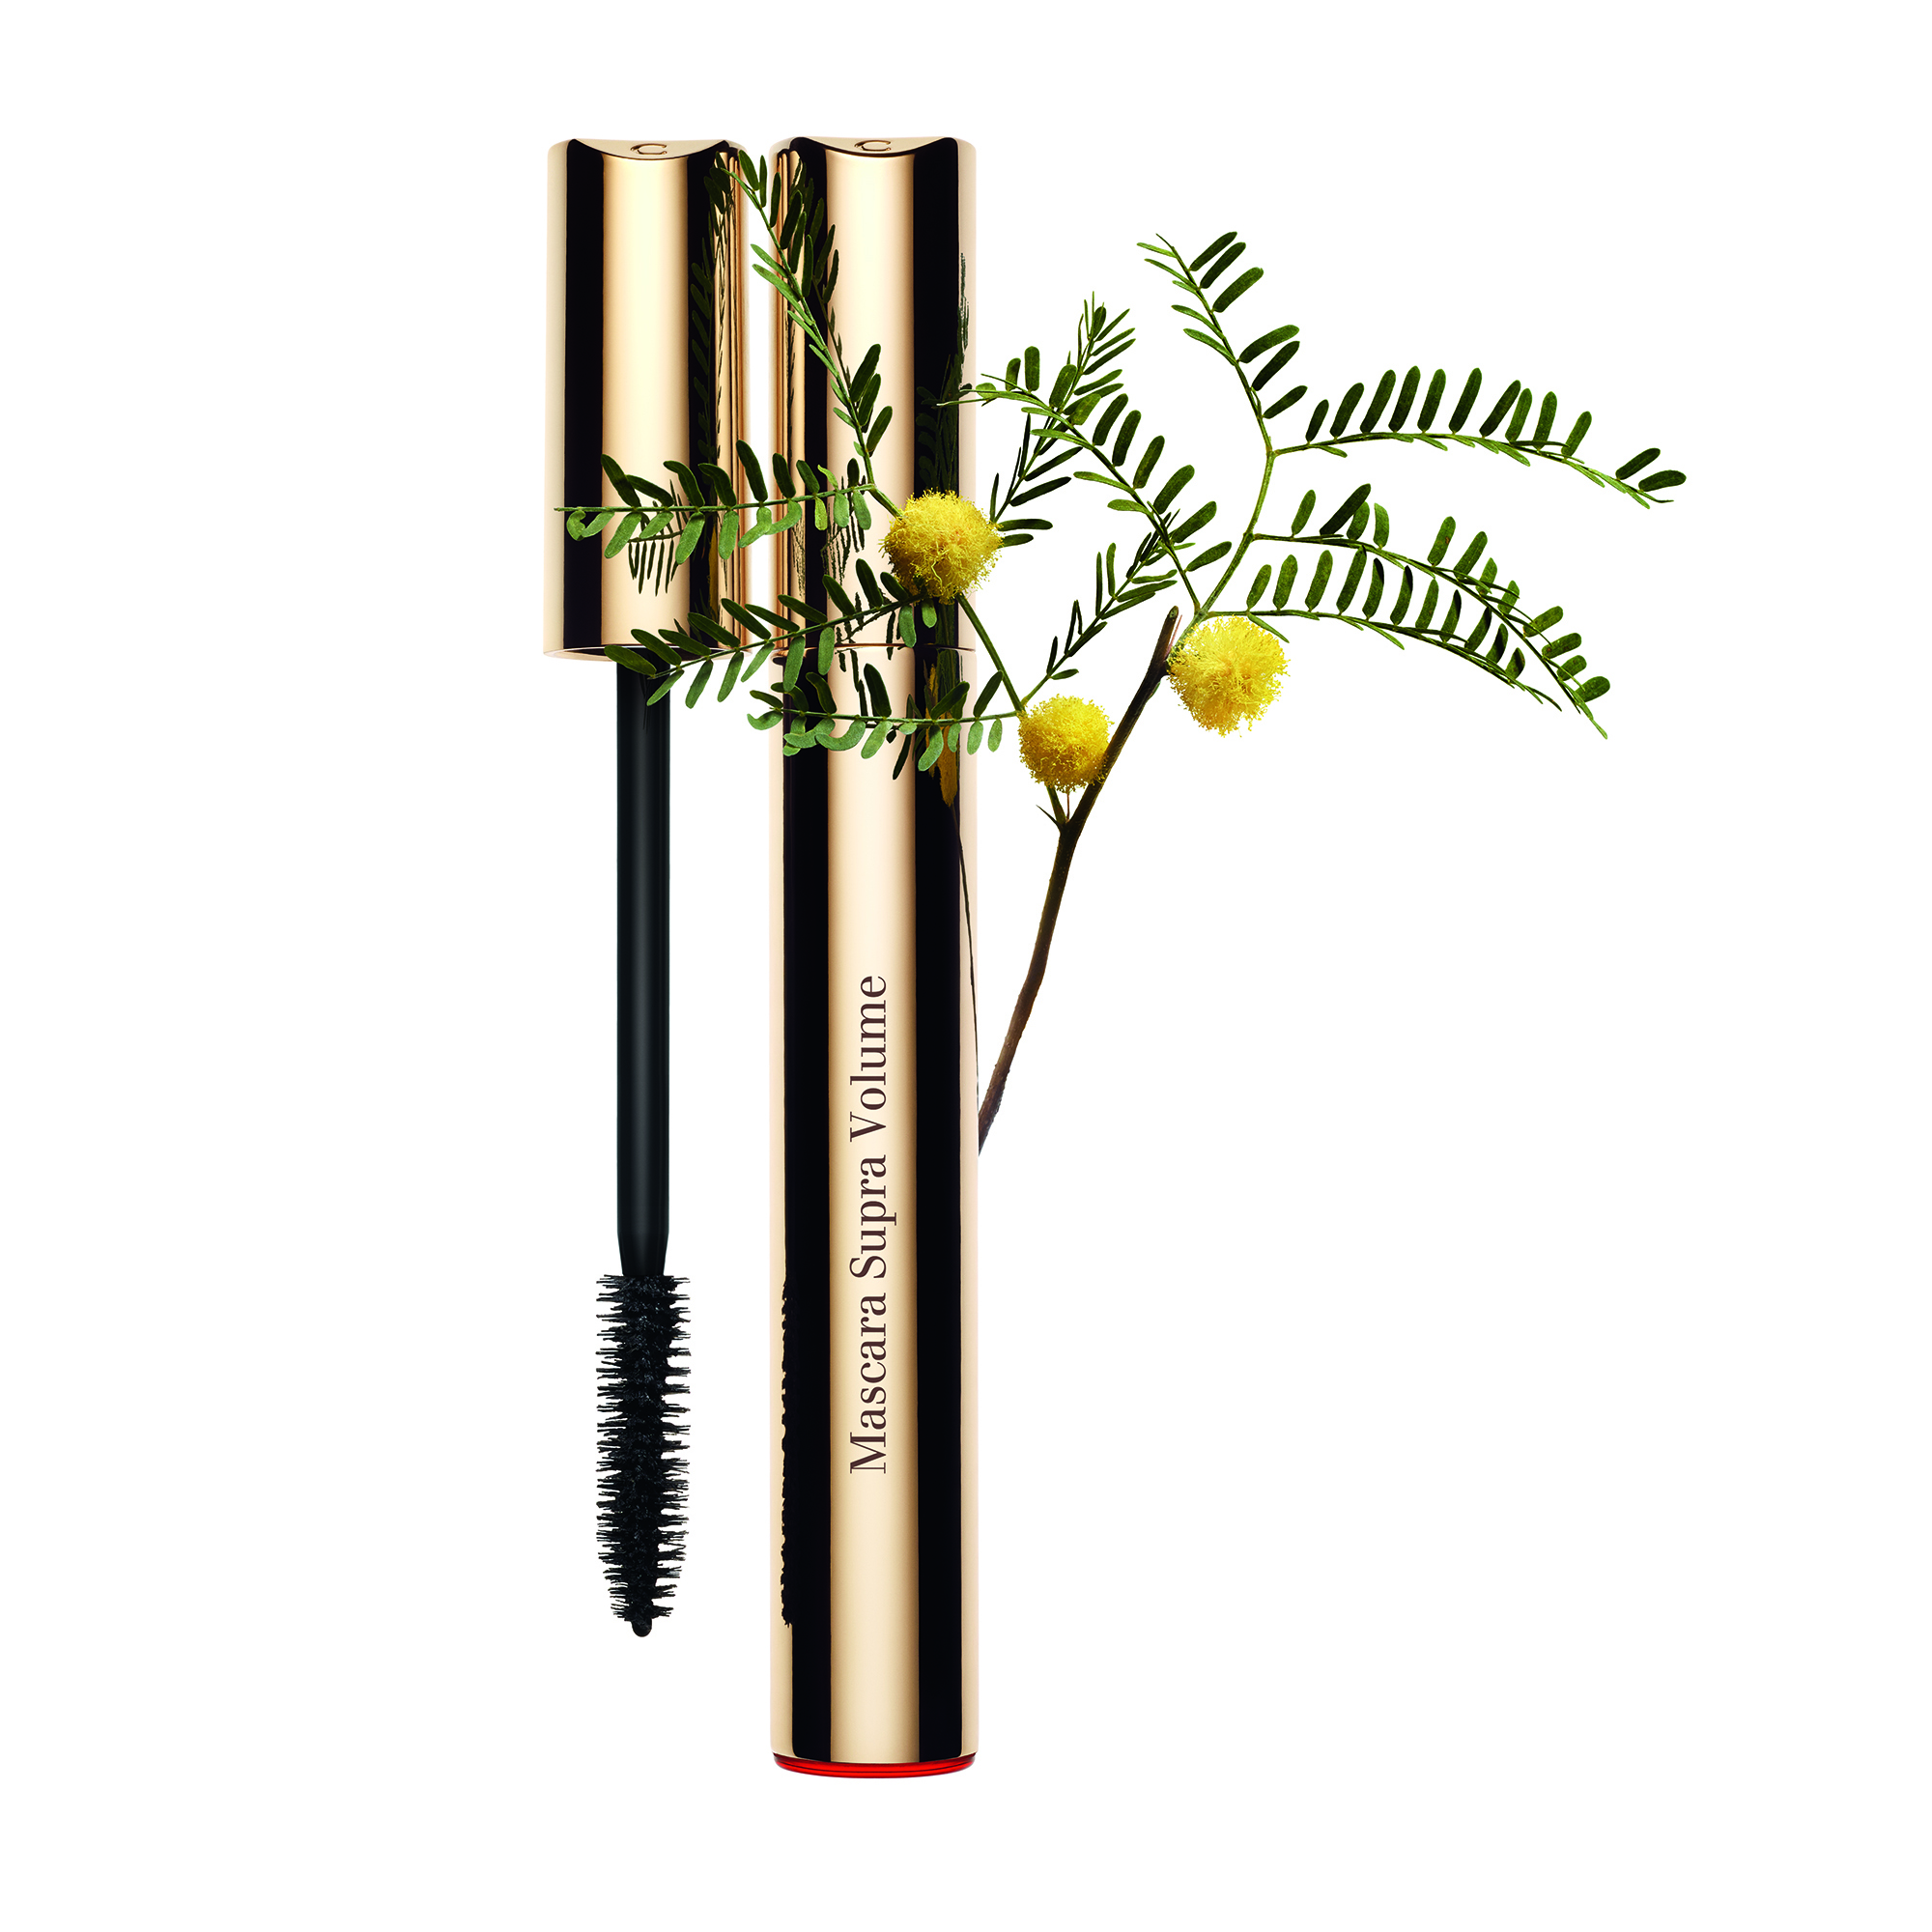 Mascara Supra Volume still life